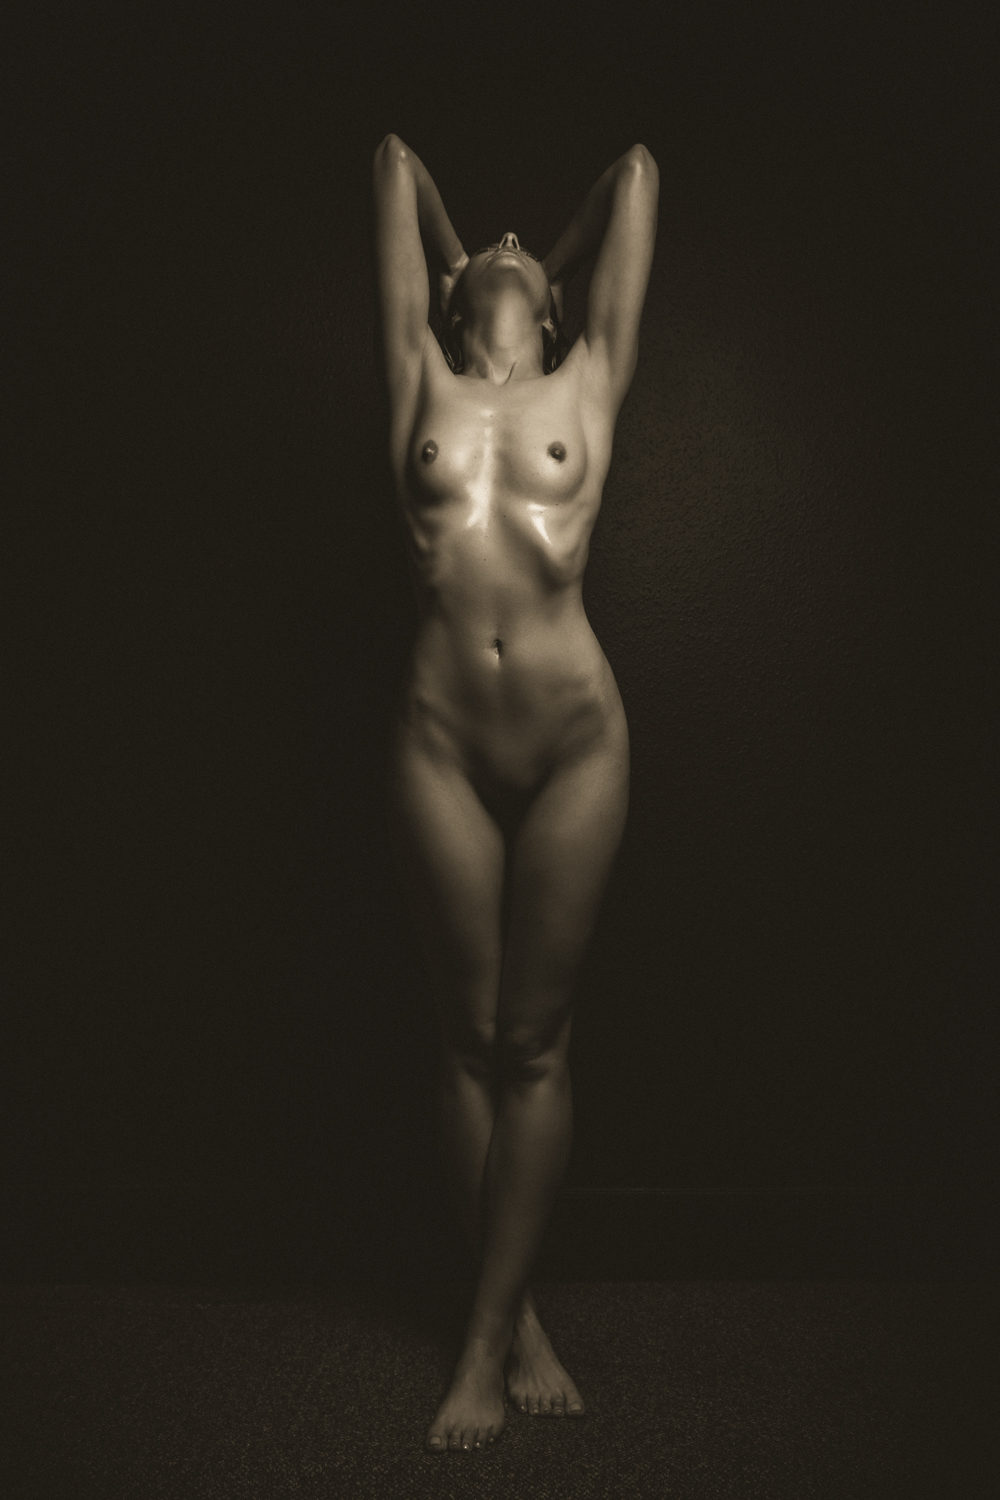 full body nude fine art